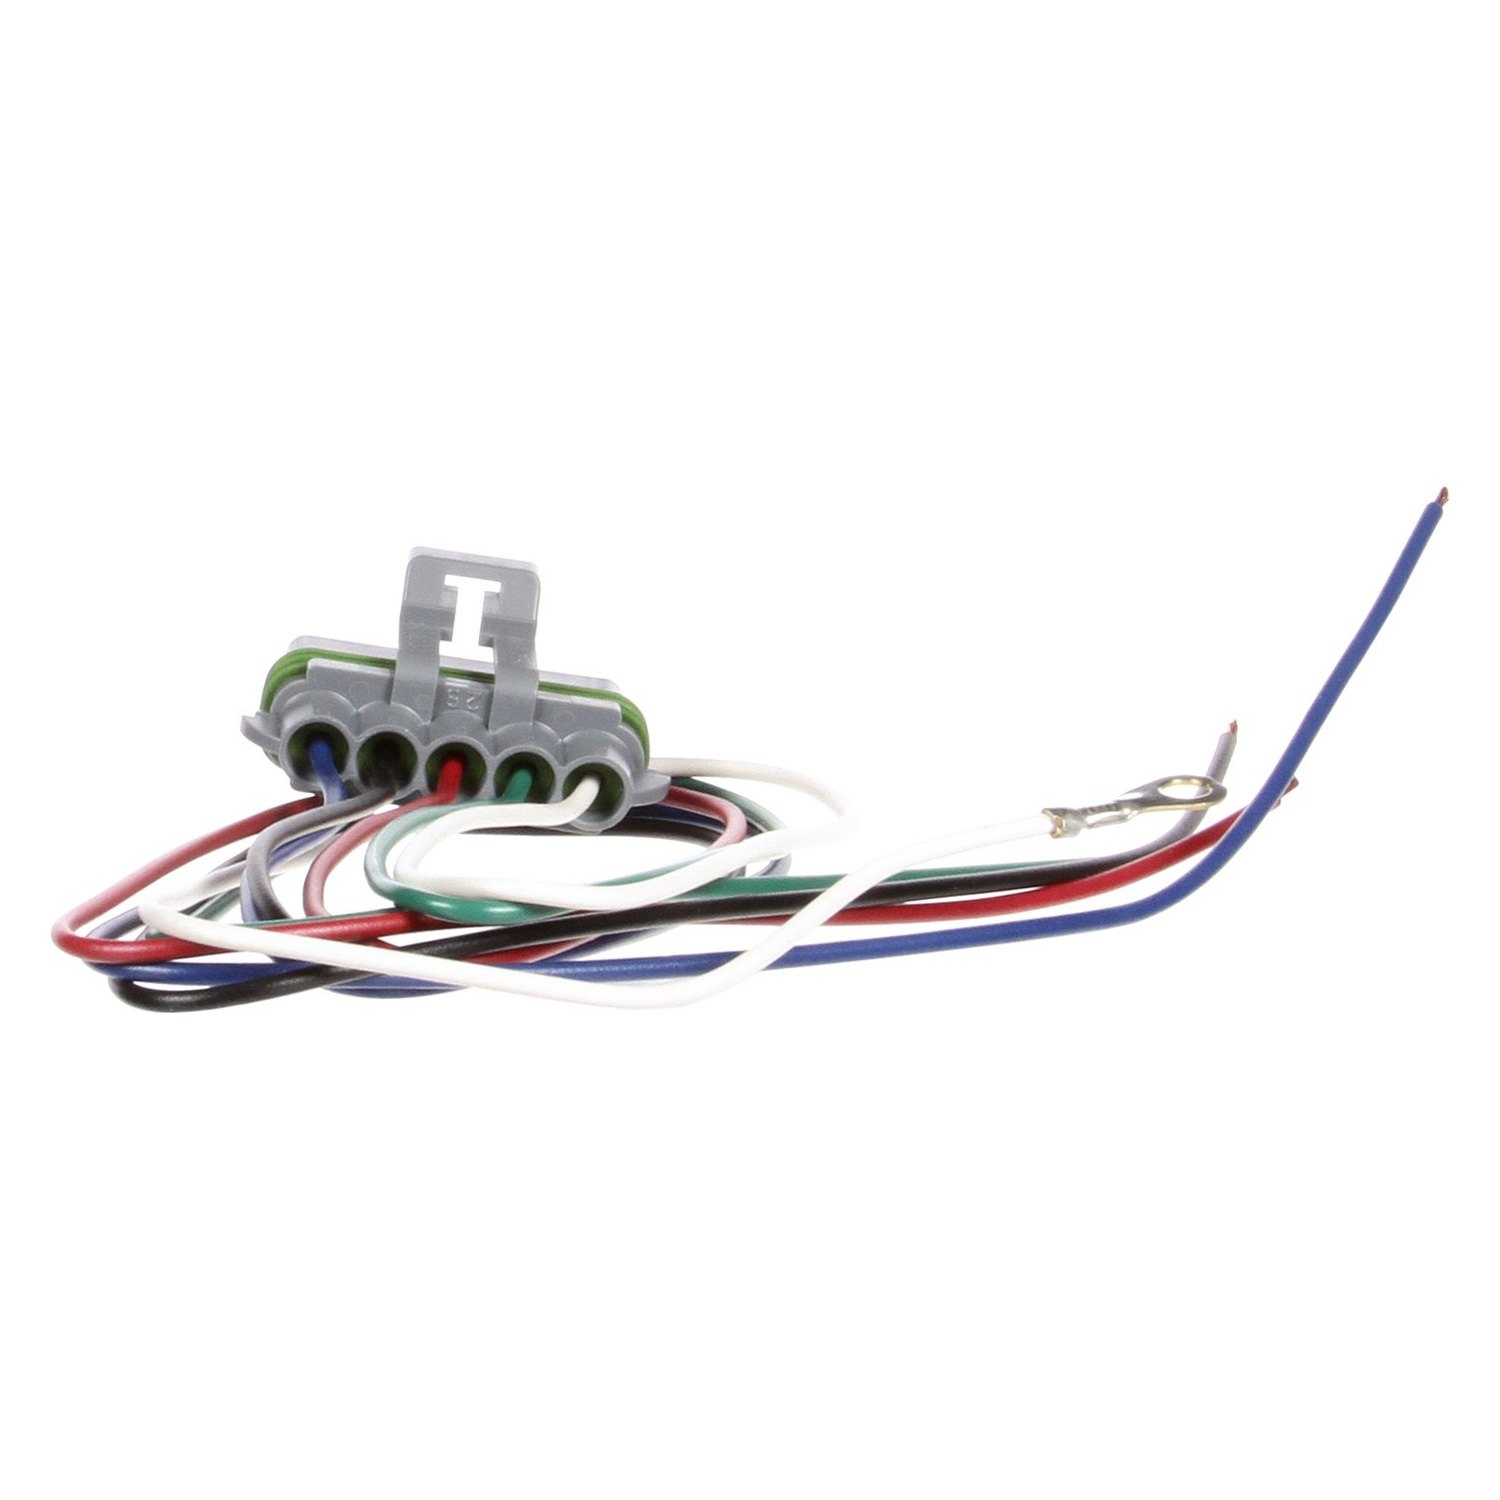 Truck Lite 9470 Signal Stat 21 1 Plug 5 Wire Connector For 5020 Wiring Lighting In Series Seriestruck